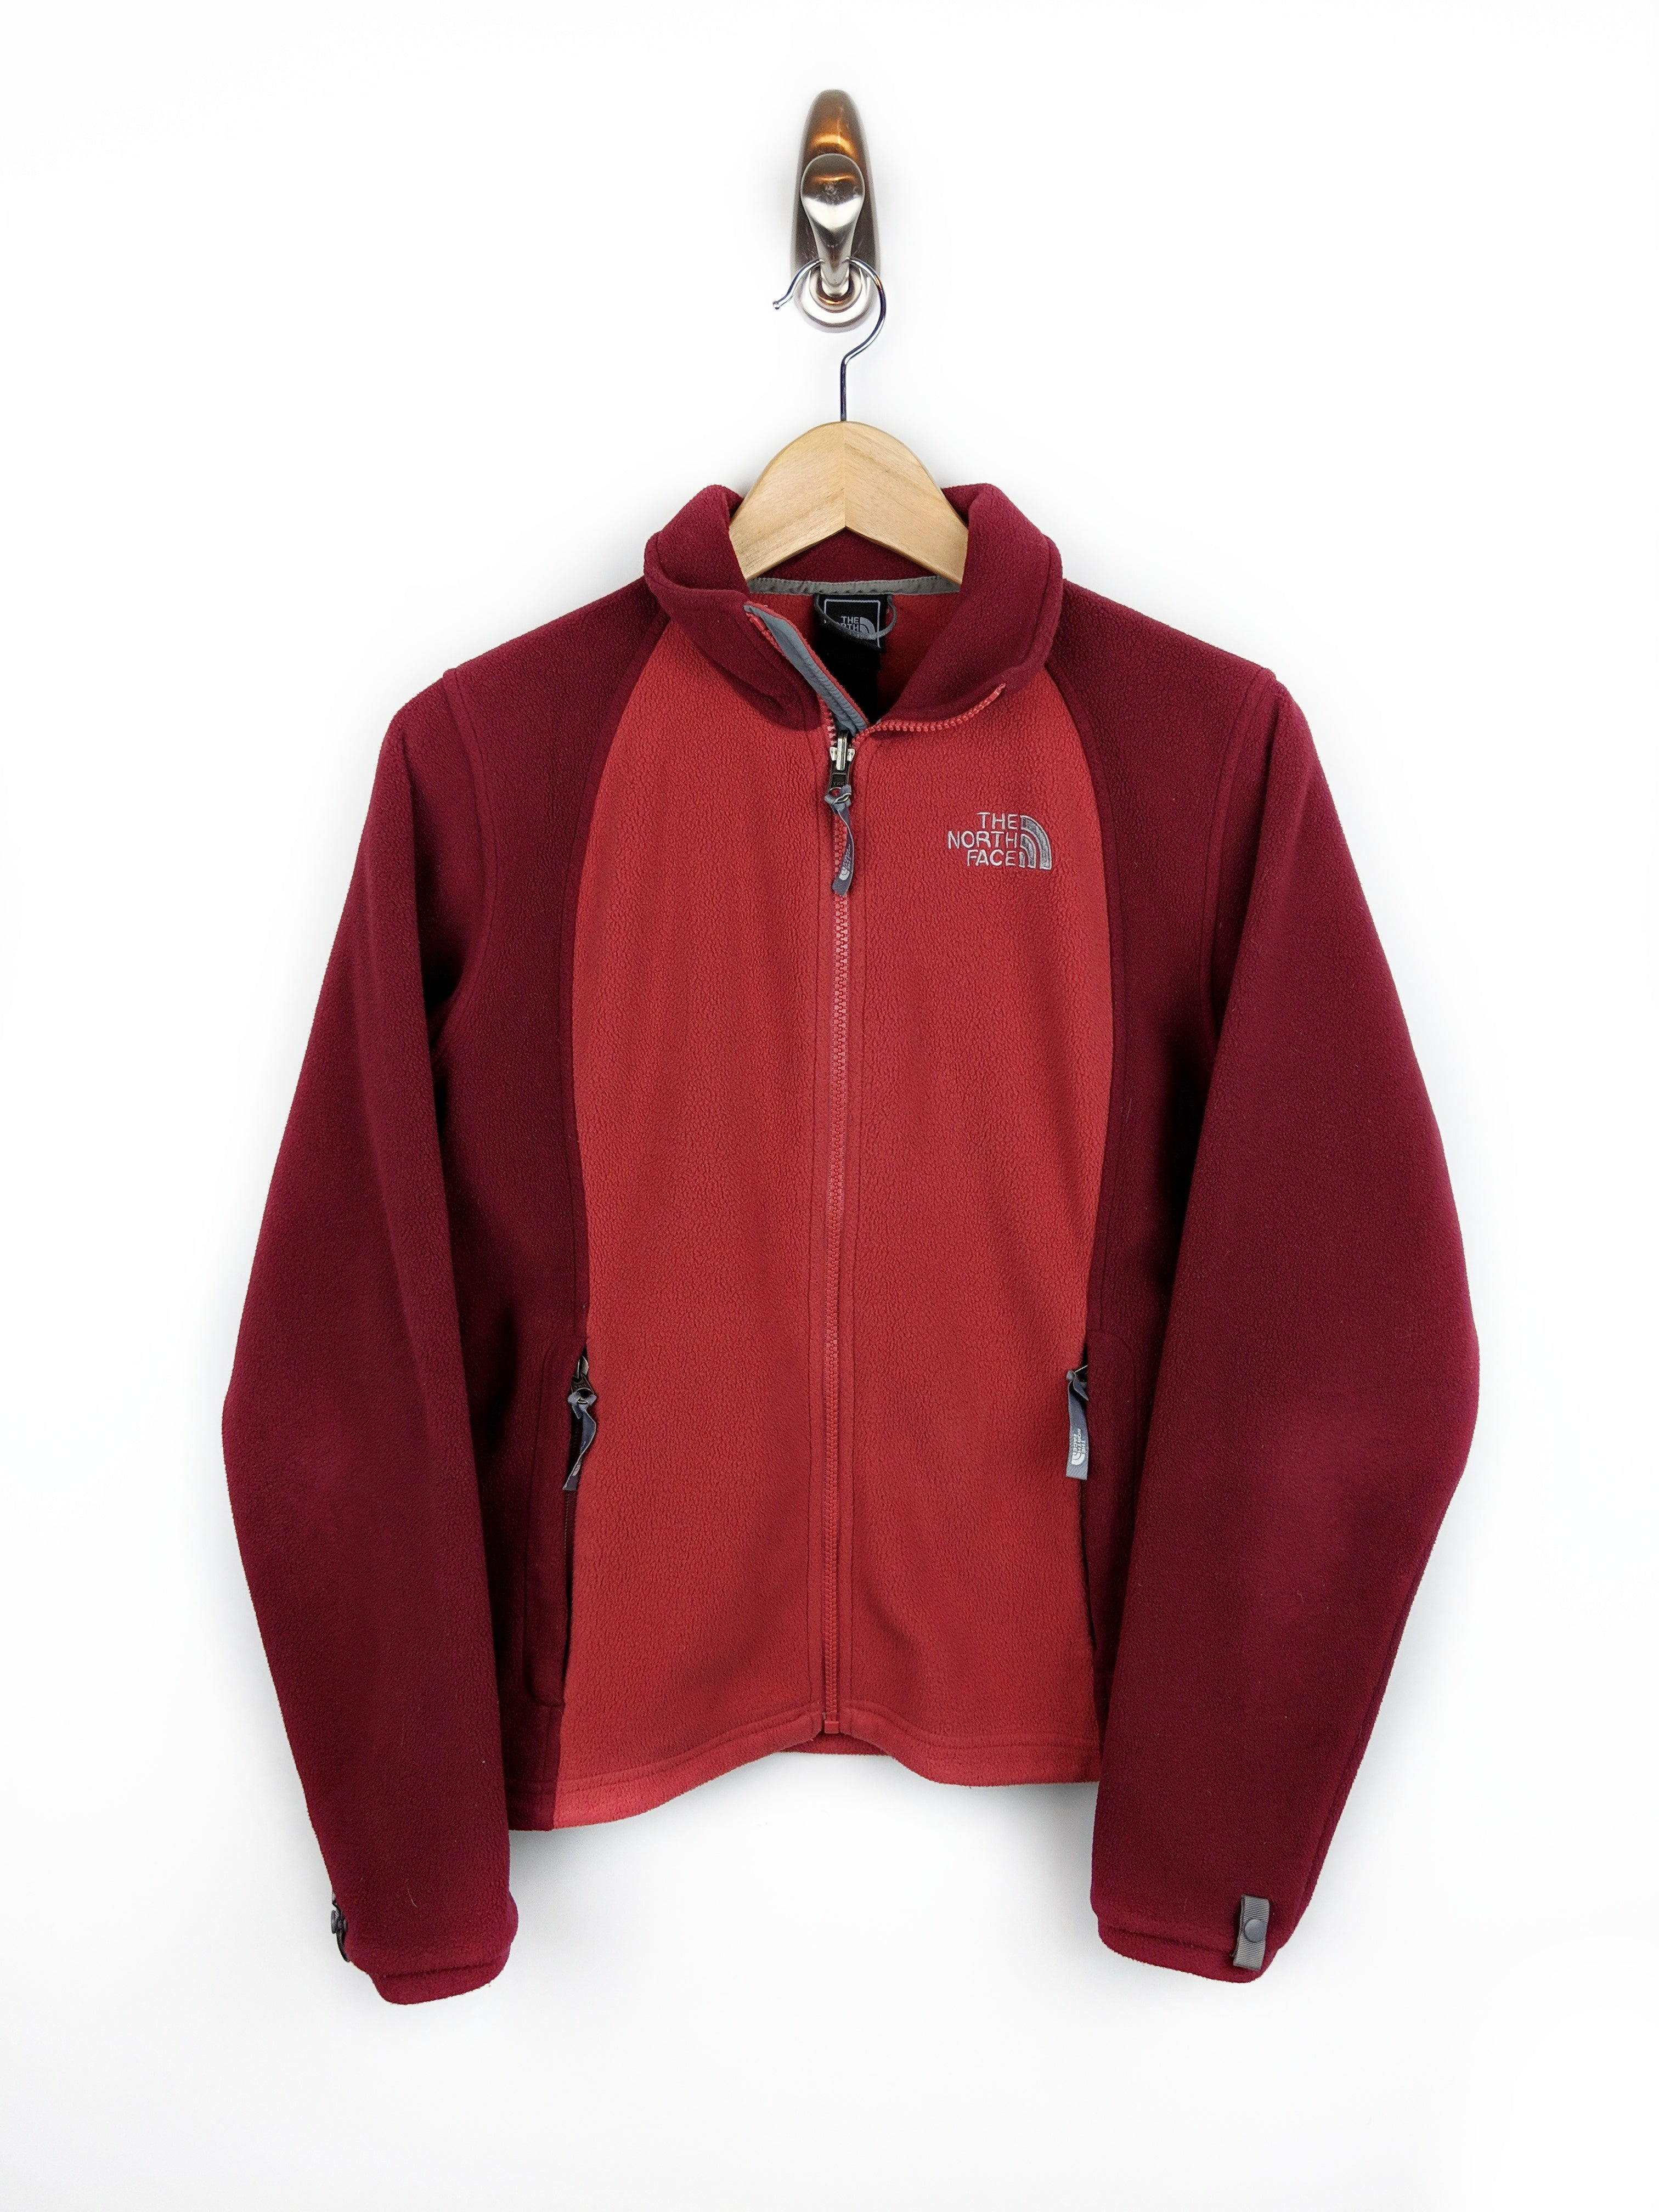 07 Full Zip Fleece Jacket (S)